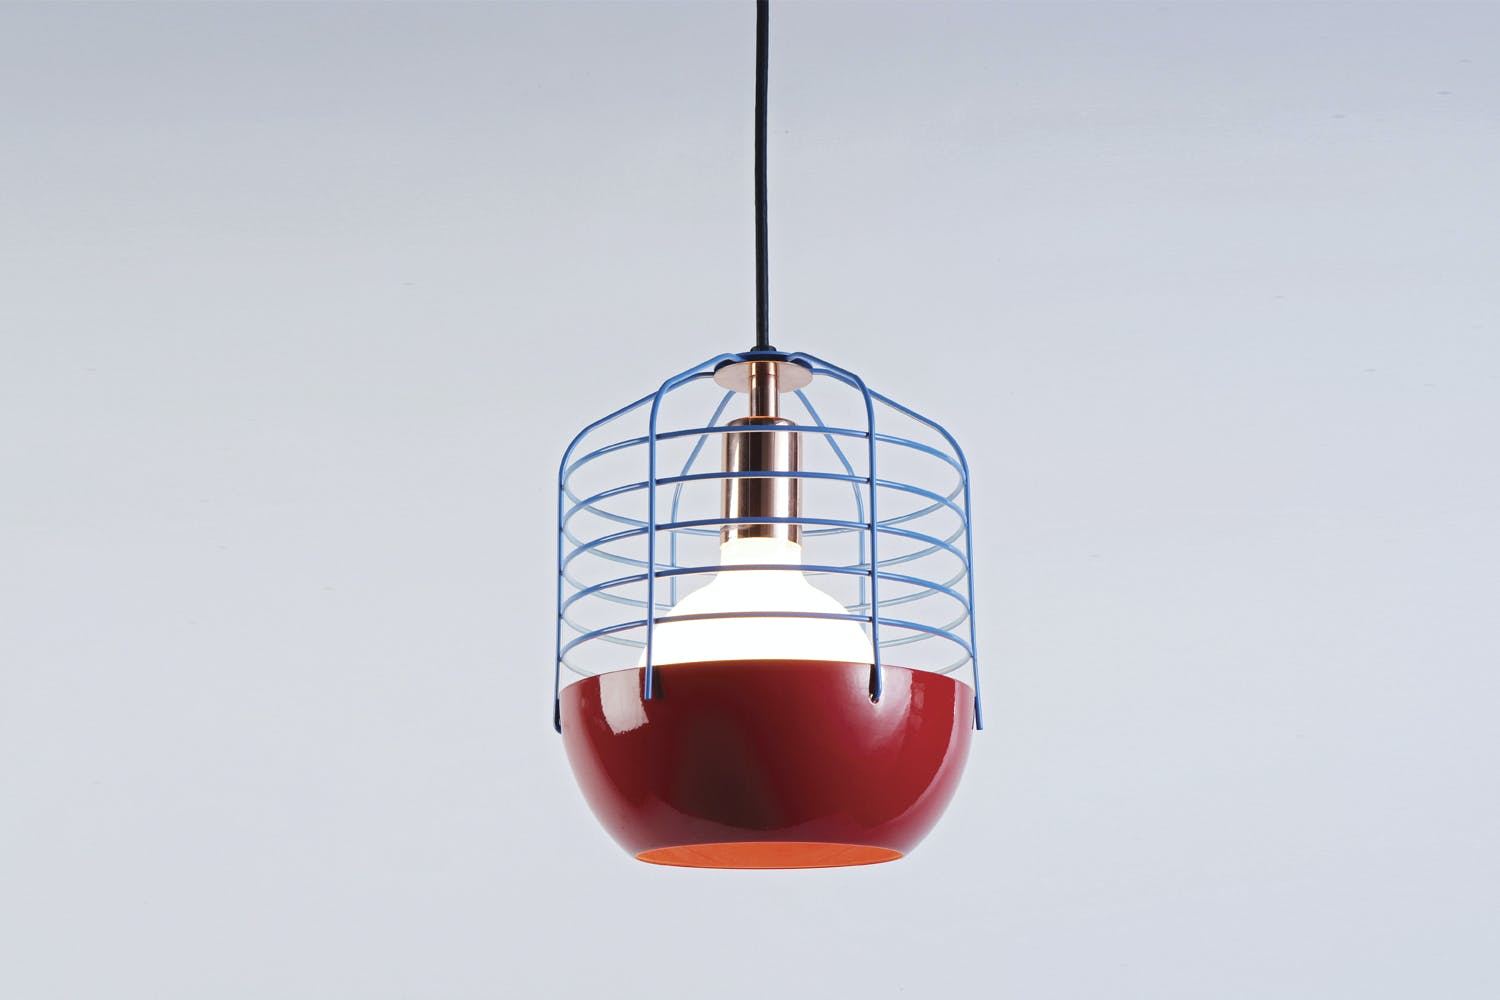 Bluff city suspension lamp by jonah takagi for roll hill for Roll and hill bluff city